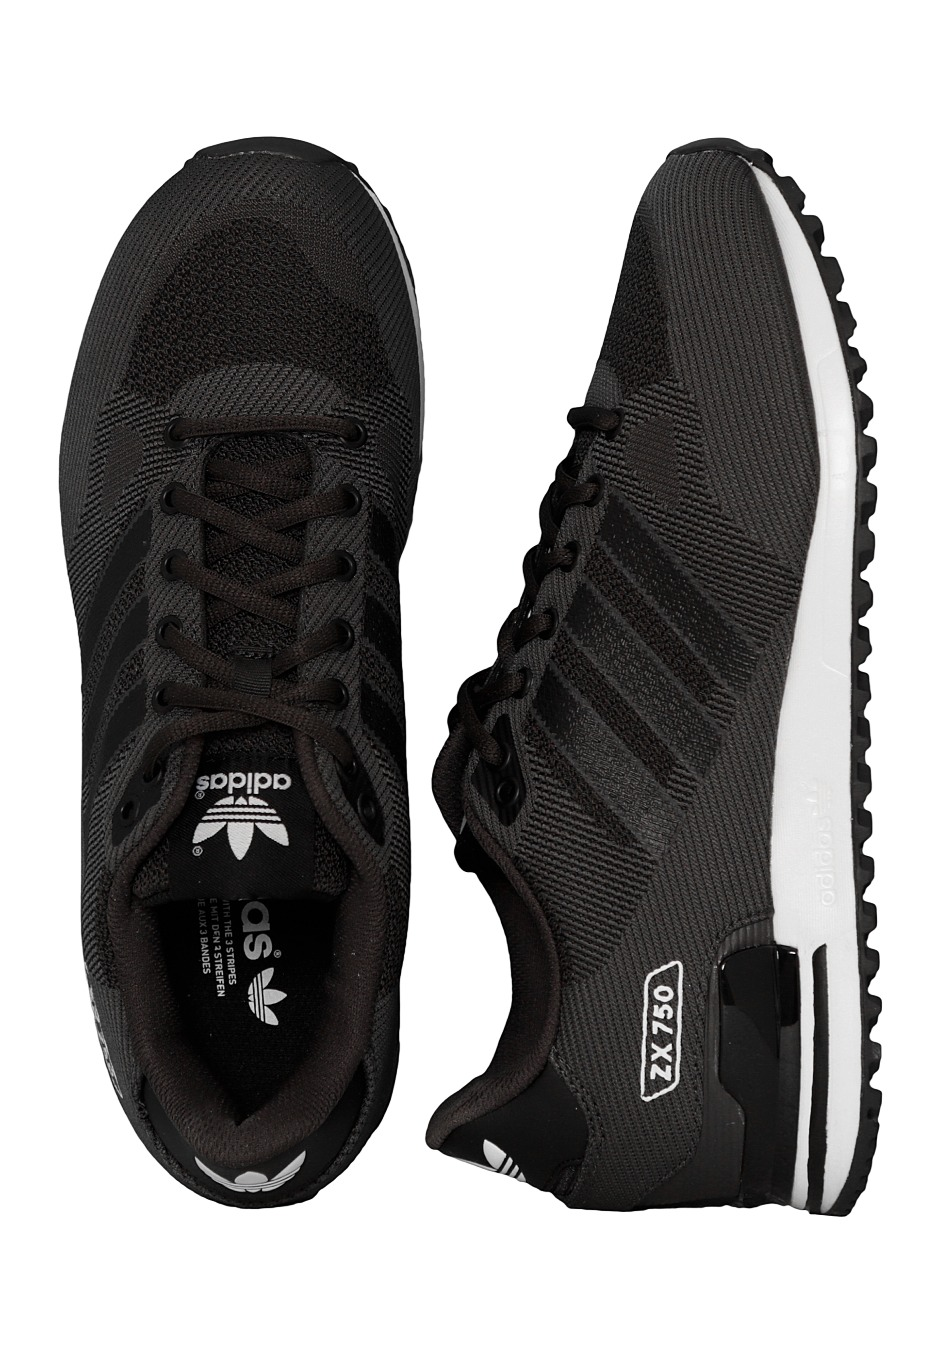 new concept 712d2 8947b Adidas - ZX 750 WV Shadow Black Core Black Ftwr White - Shoes -  Impericon.com UK